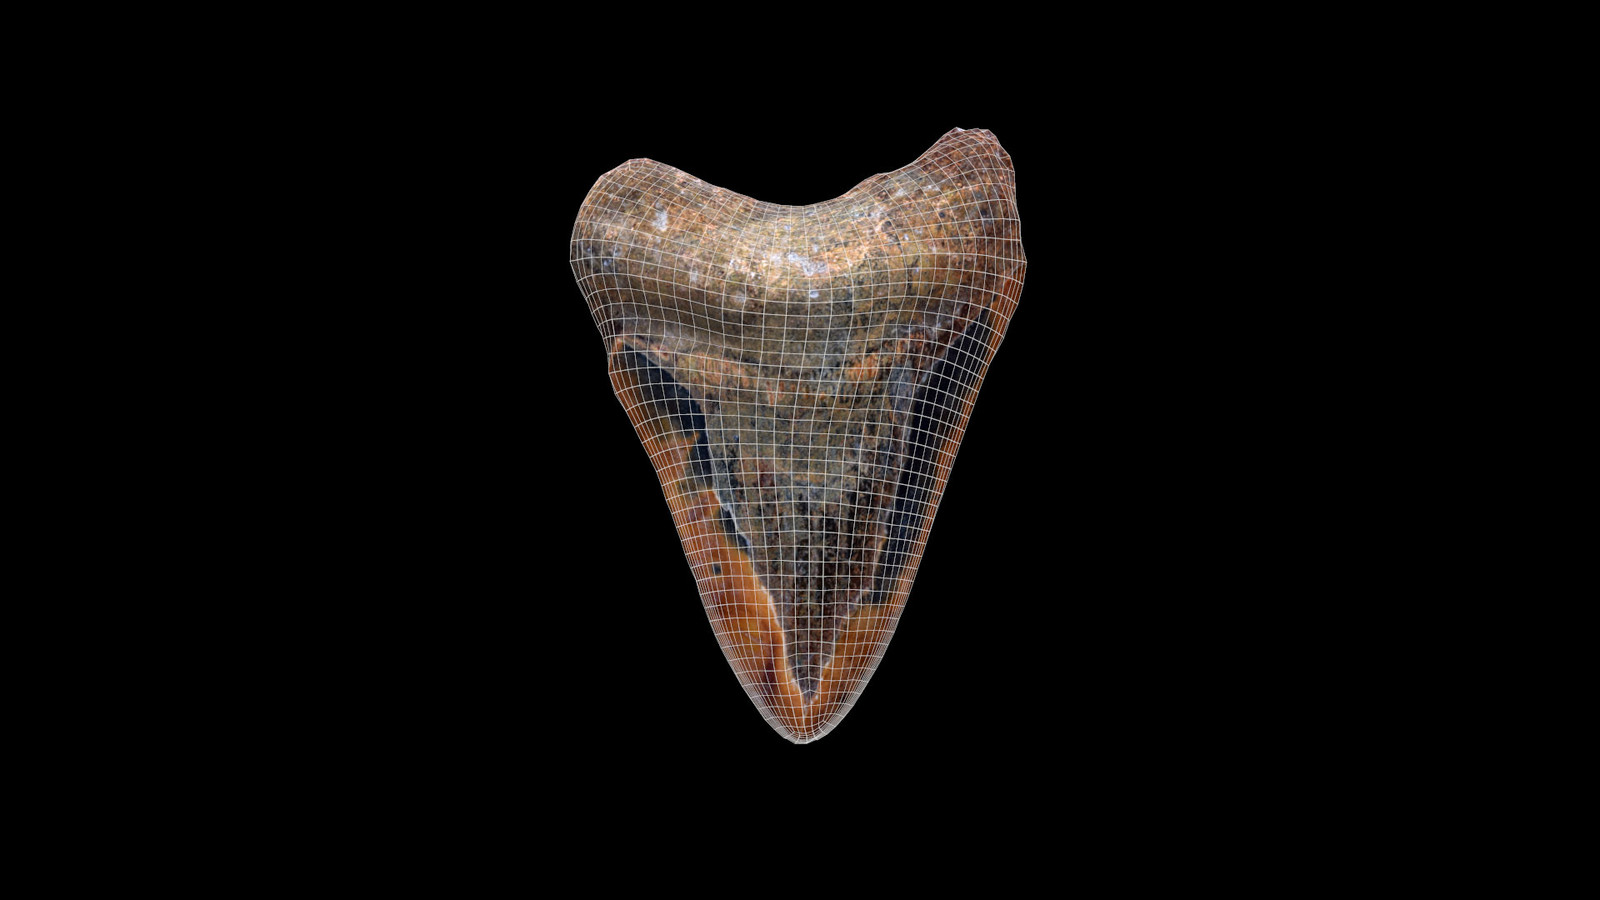 Fossilized Megalodon Tooth with wireframe